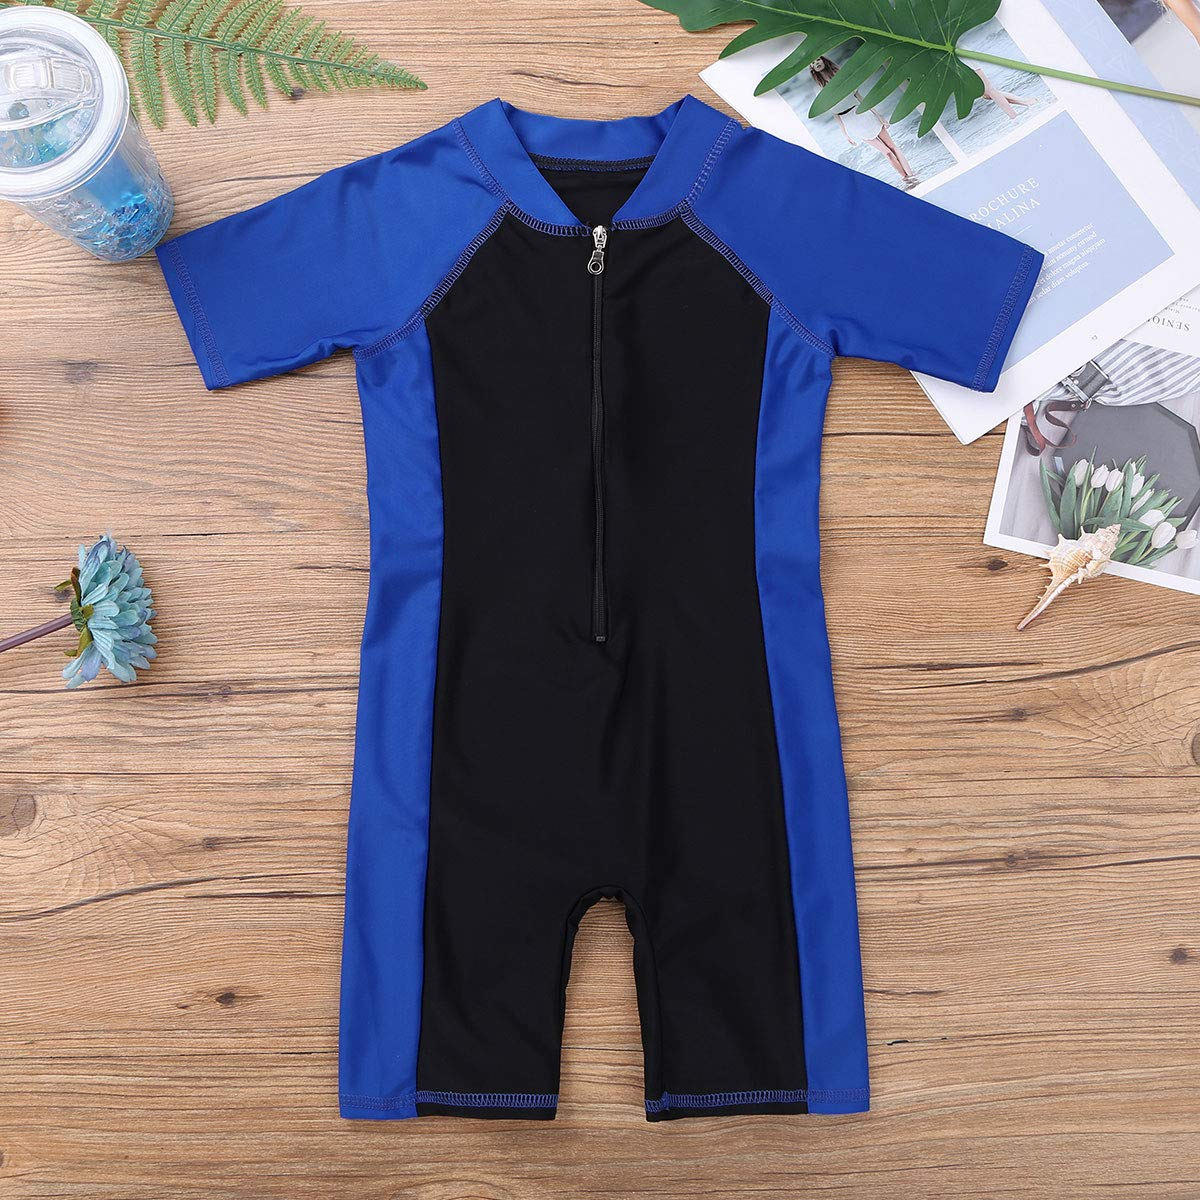 iixpin Kids Boys One-Piece Shorty Wetsuit Short Sleeves Zippered Swimsuit Bathing Suit Surfing Snorkeling Diving Suit Swimming Costume